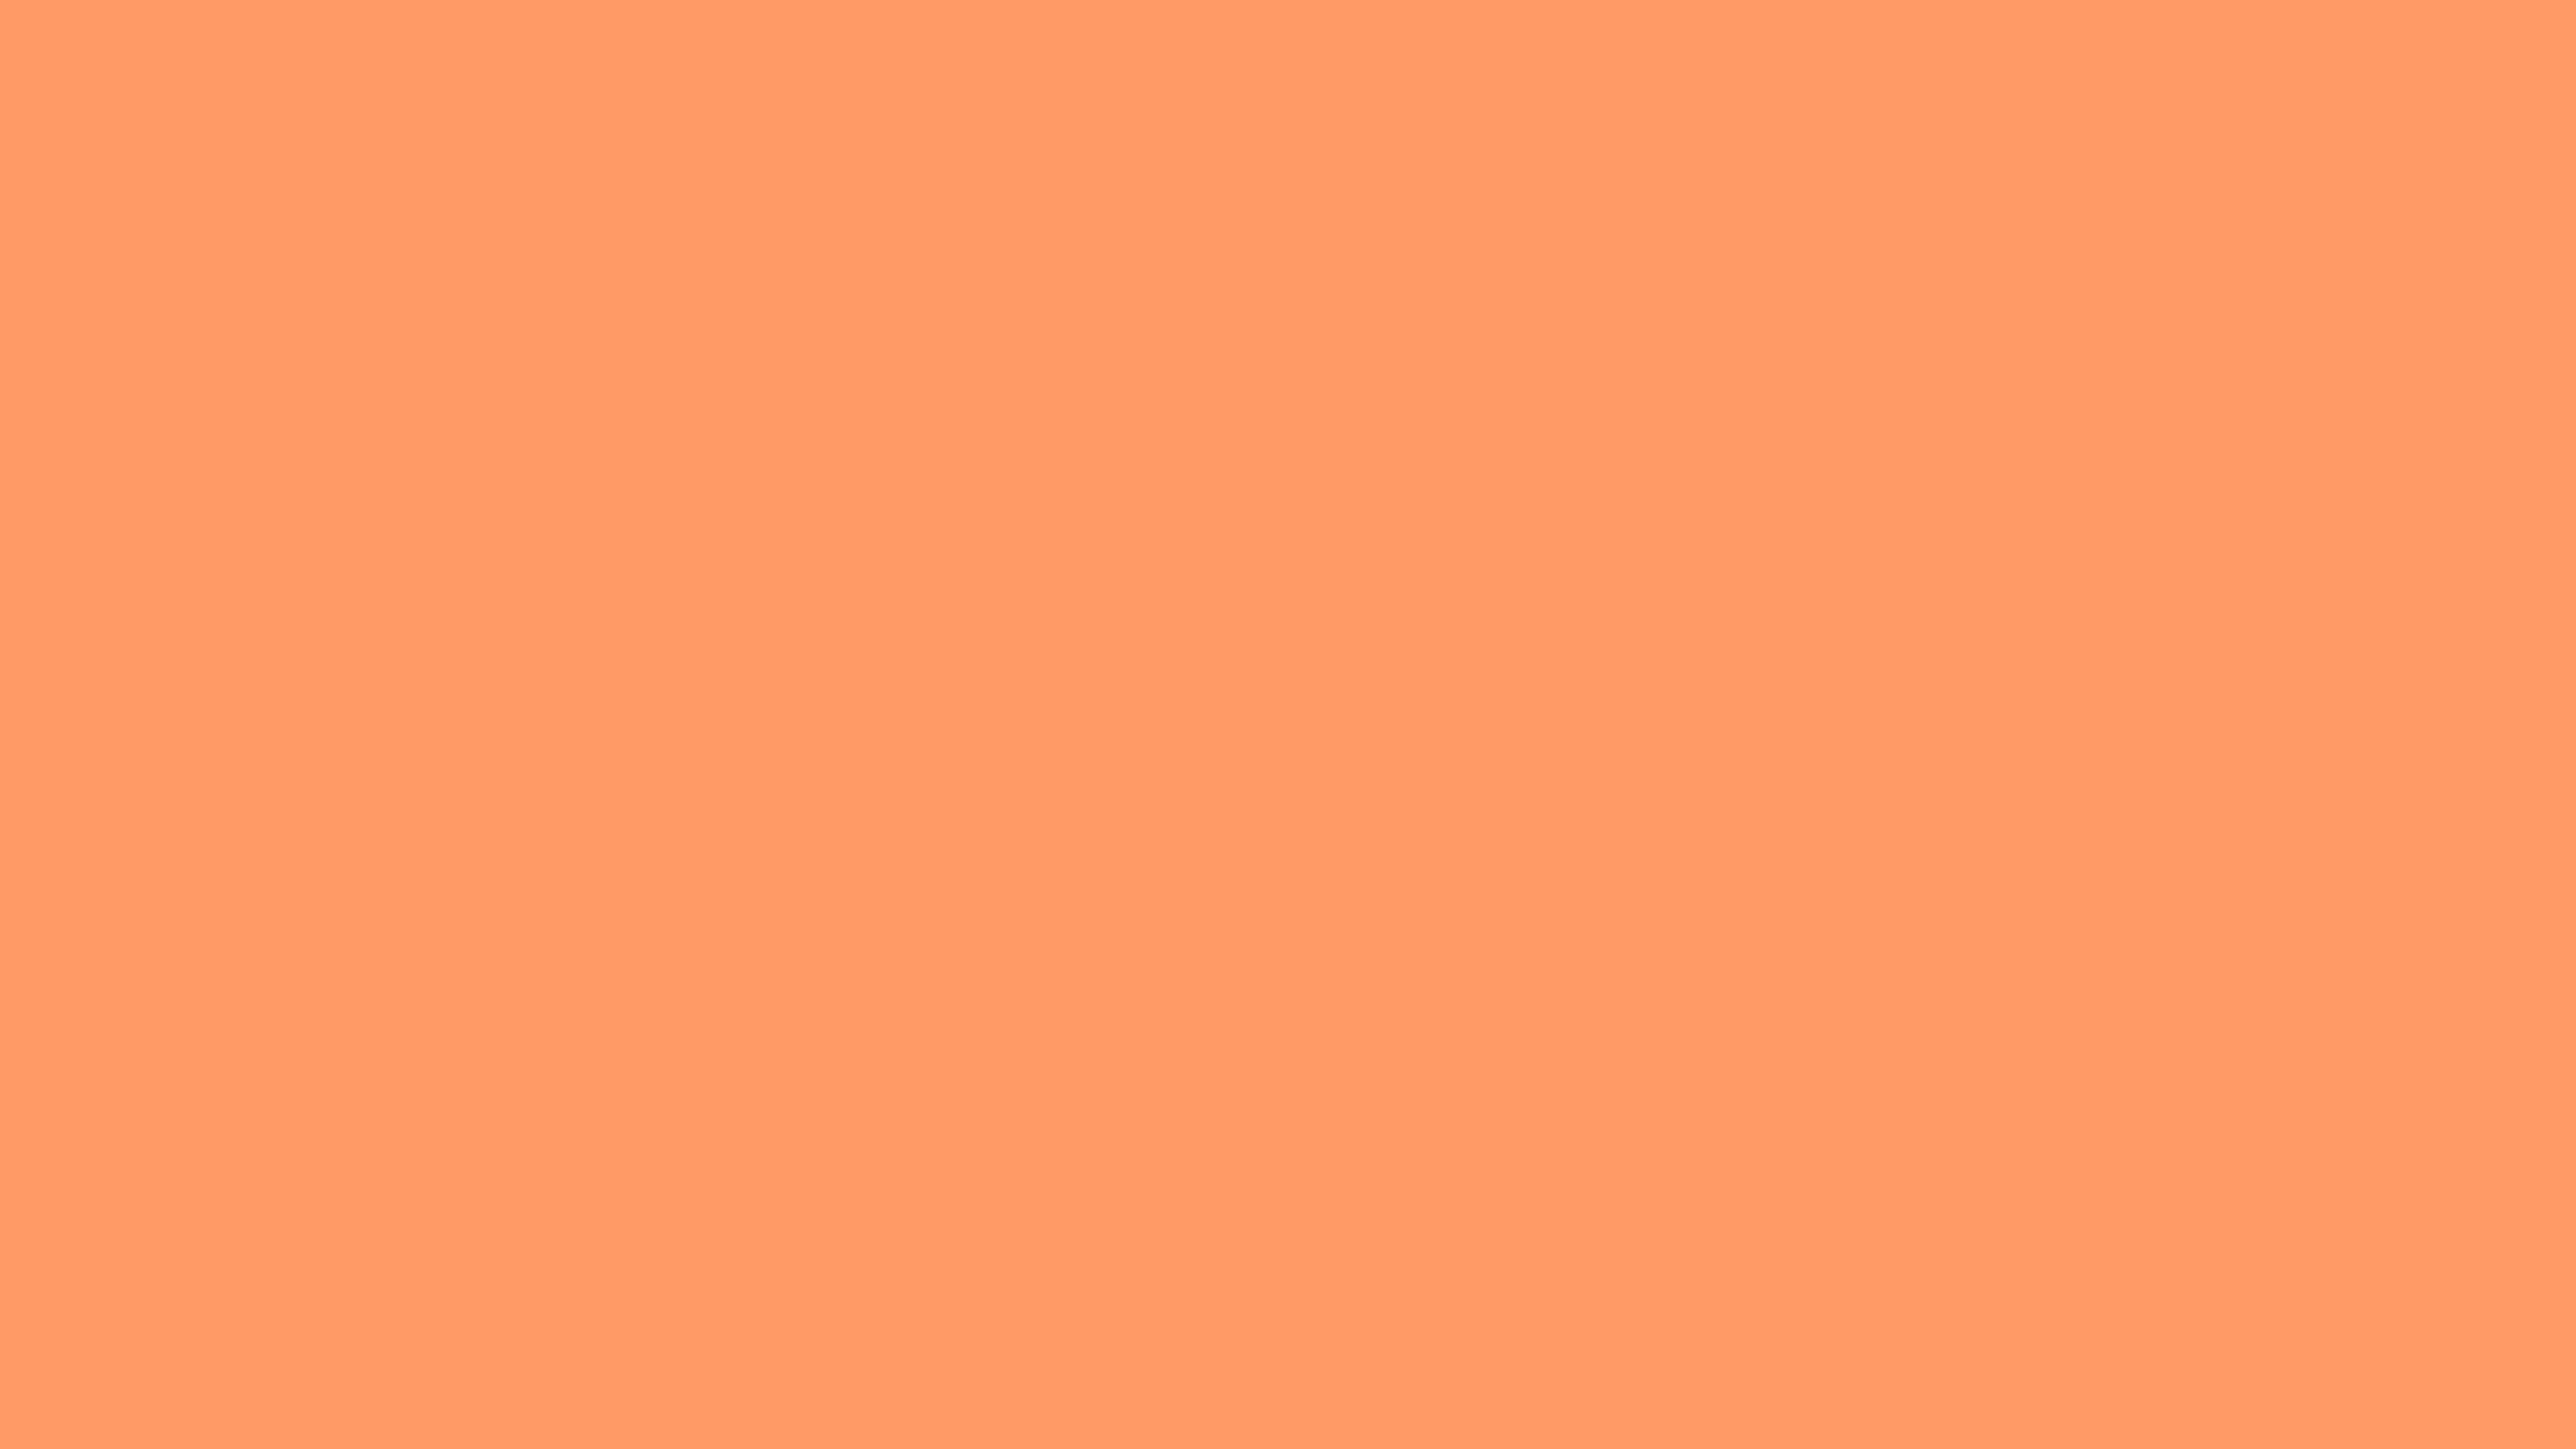 7680x4320 Atomic Tangerine Solid Color Background